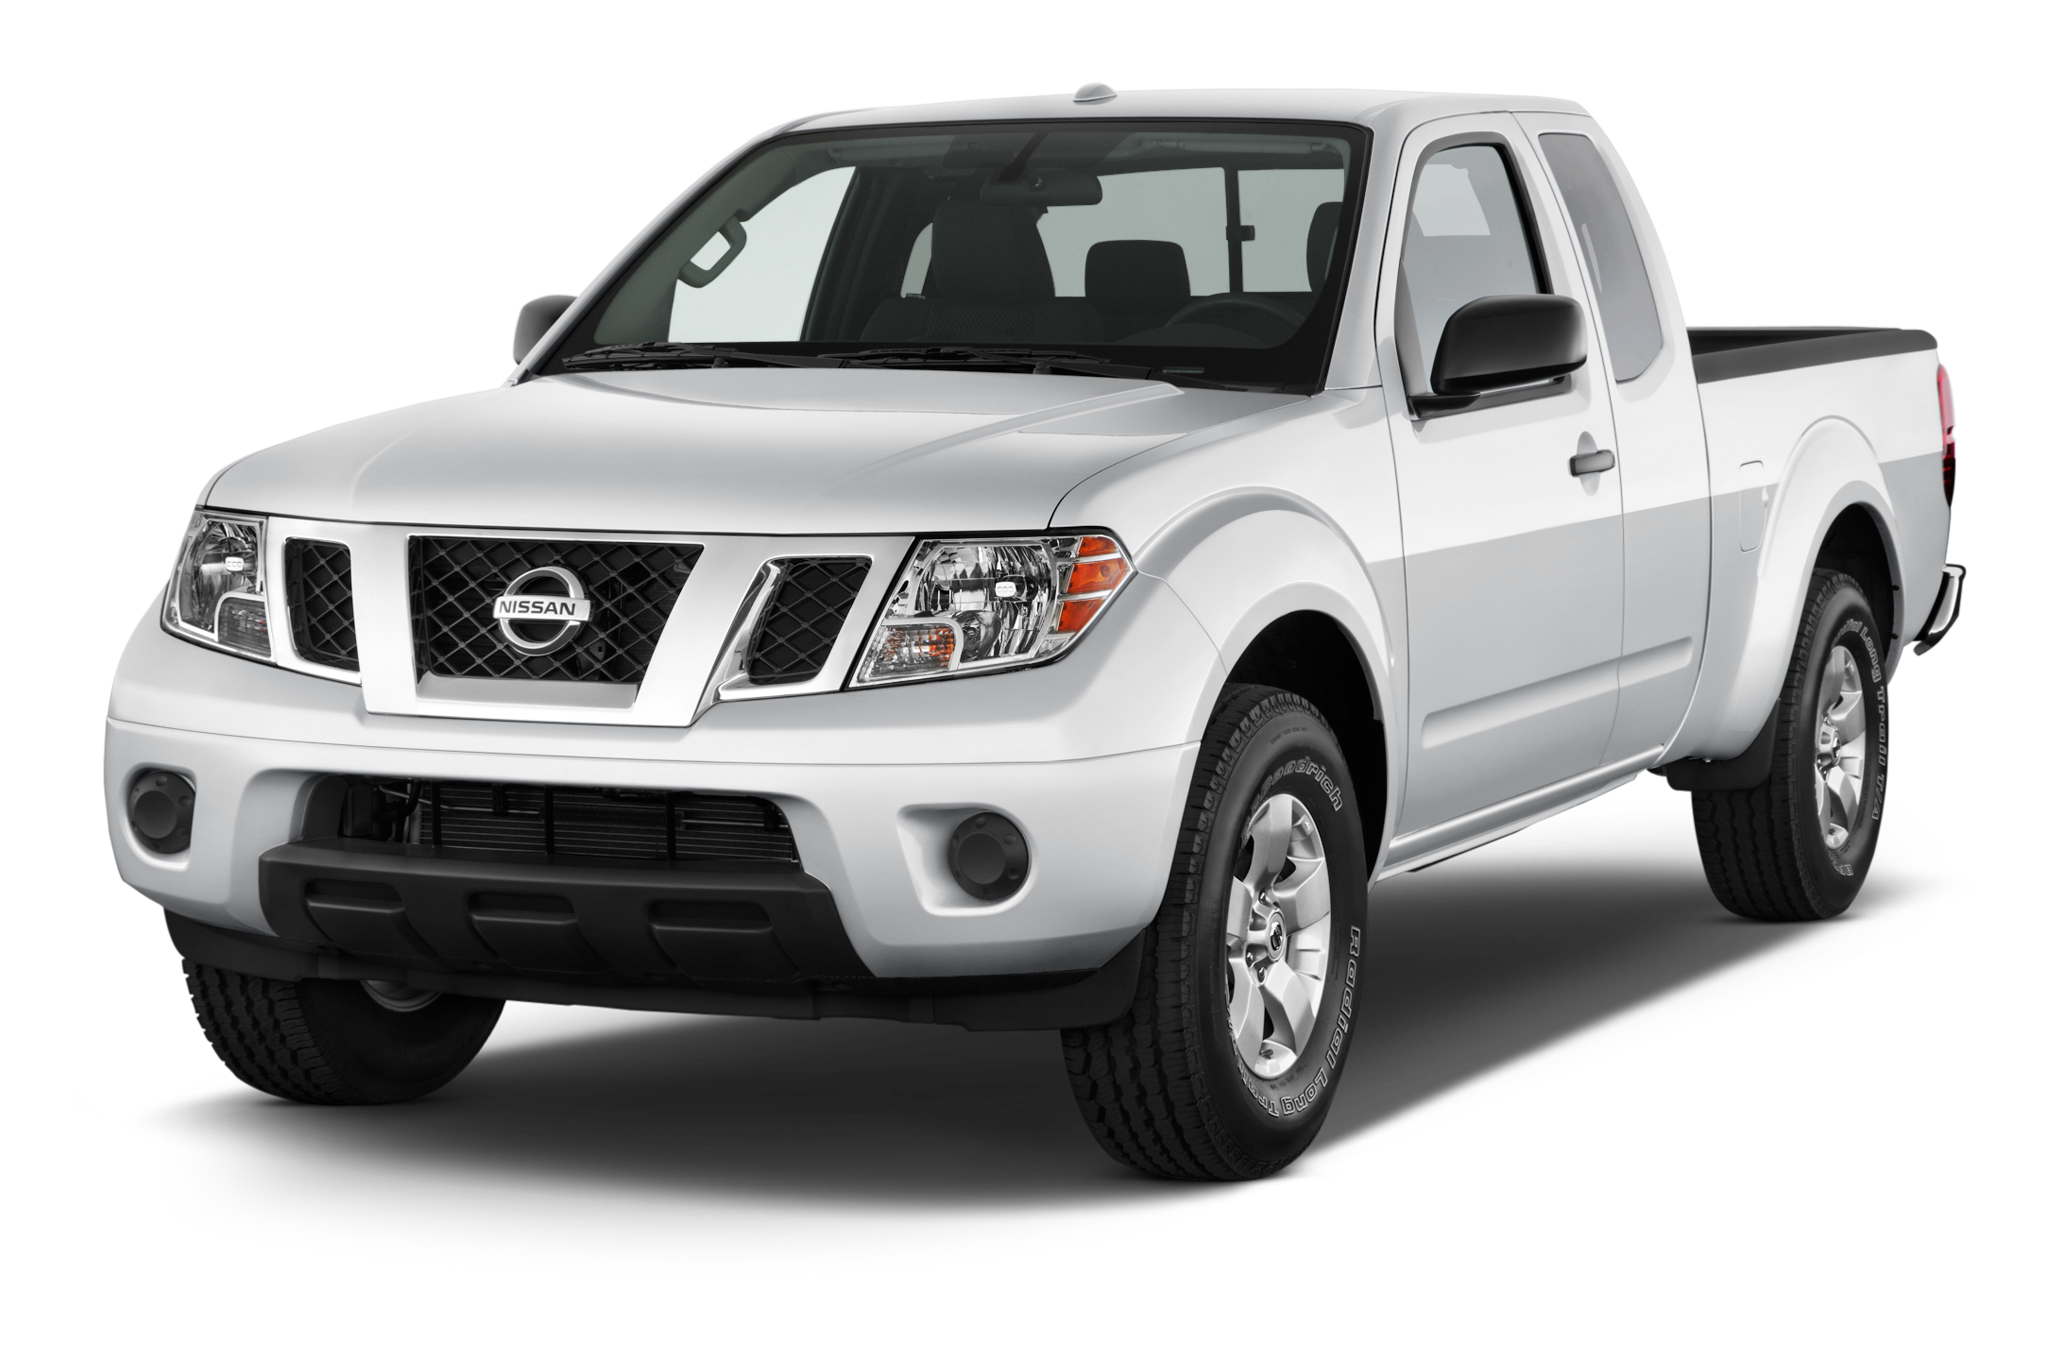 2014 nissan frontier 2 5 s king cab 4x2 mt pricing msn autos. Black Bedroom Furniture Sets. Home Design Ideas